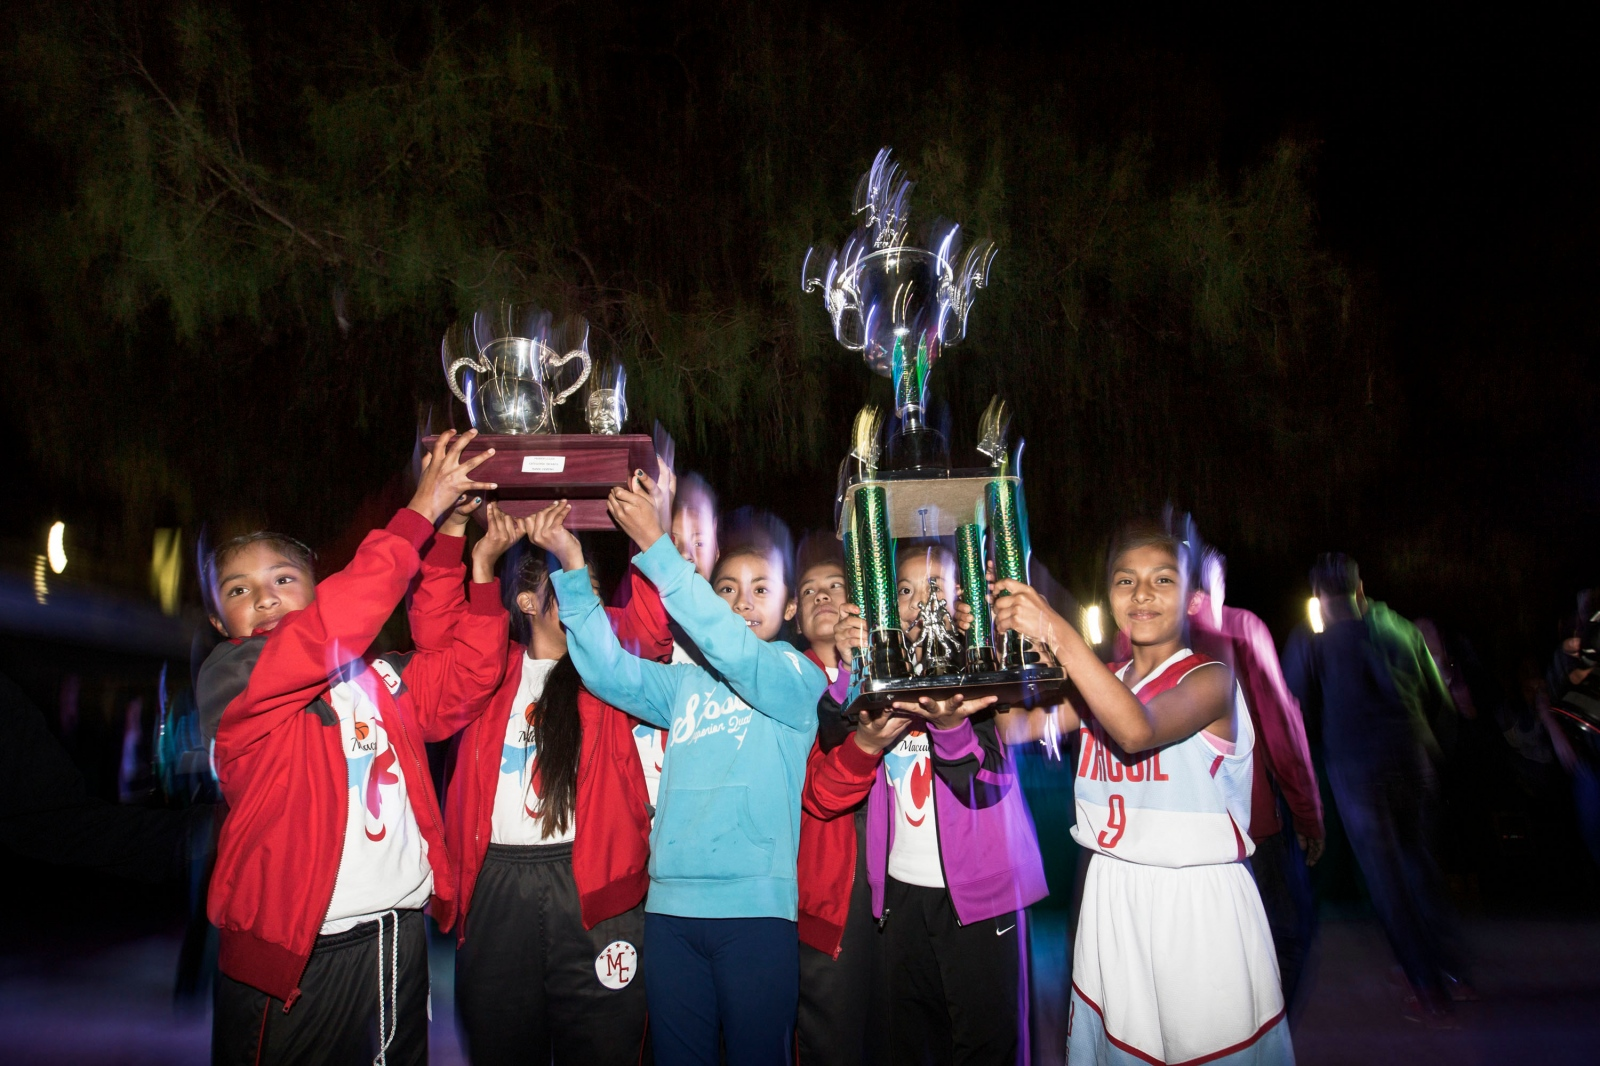 GUELATAO DE JUÁREZ, MARCH 21, 2016. Players from Macuiltianguis pose with the Benito Juárez Cup of the girl's category after winning the final match.